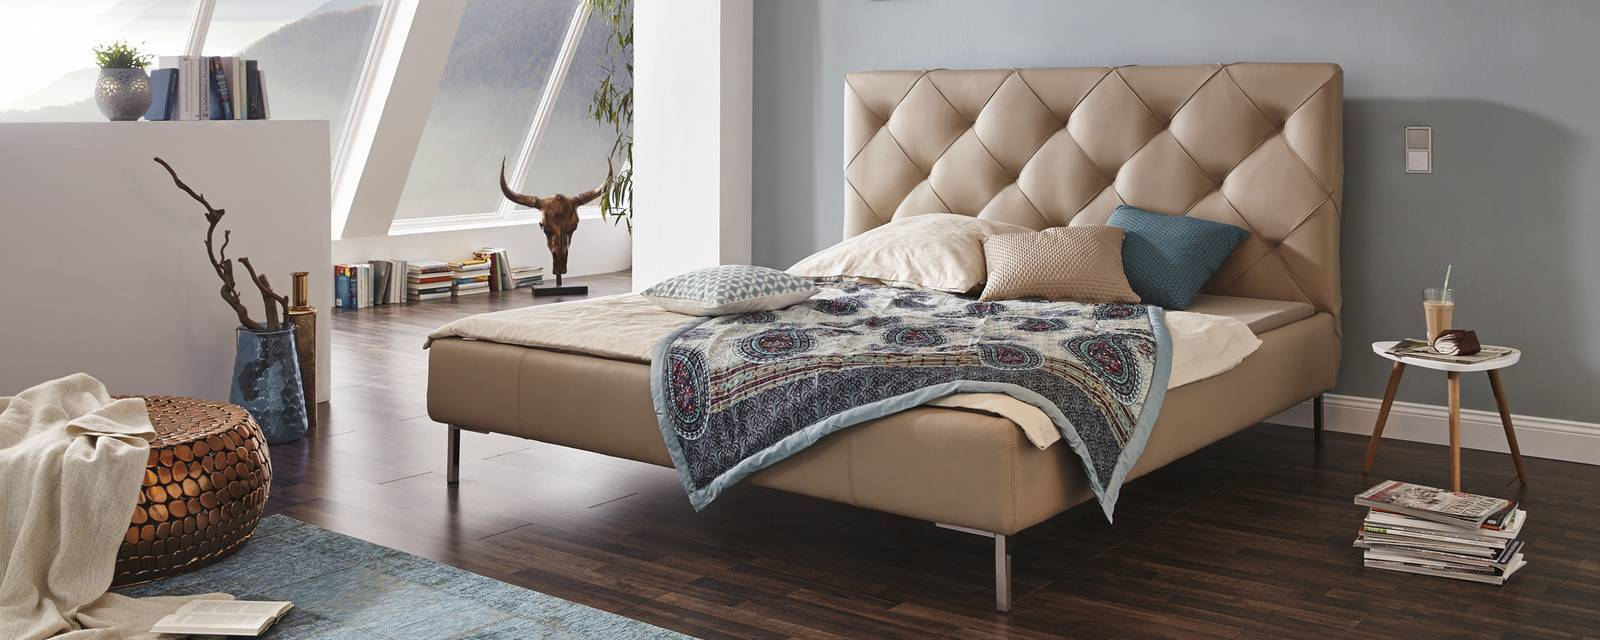 csm_Sixty_Bed_1_dc2b6809fb